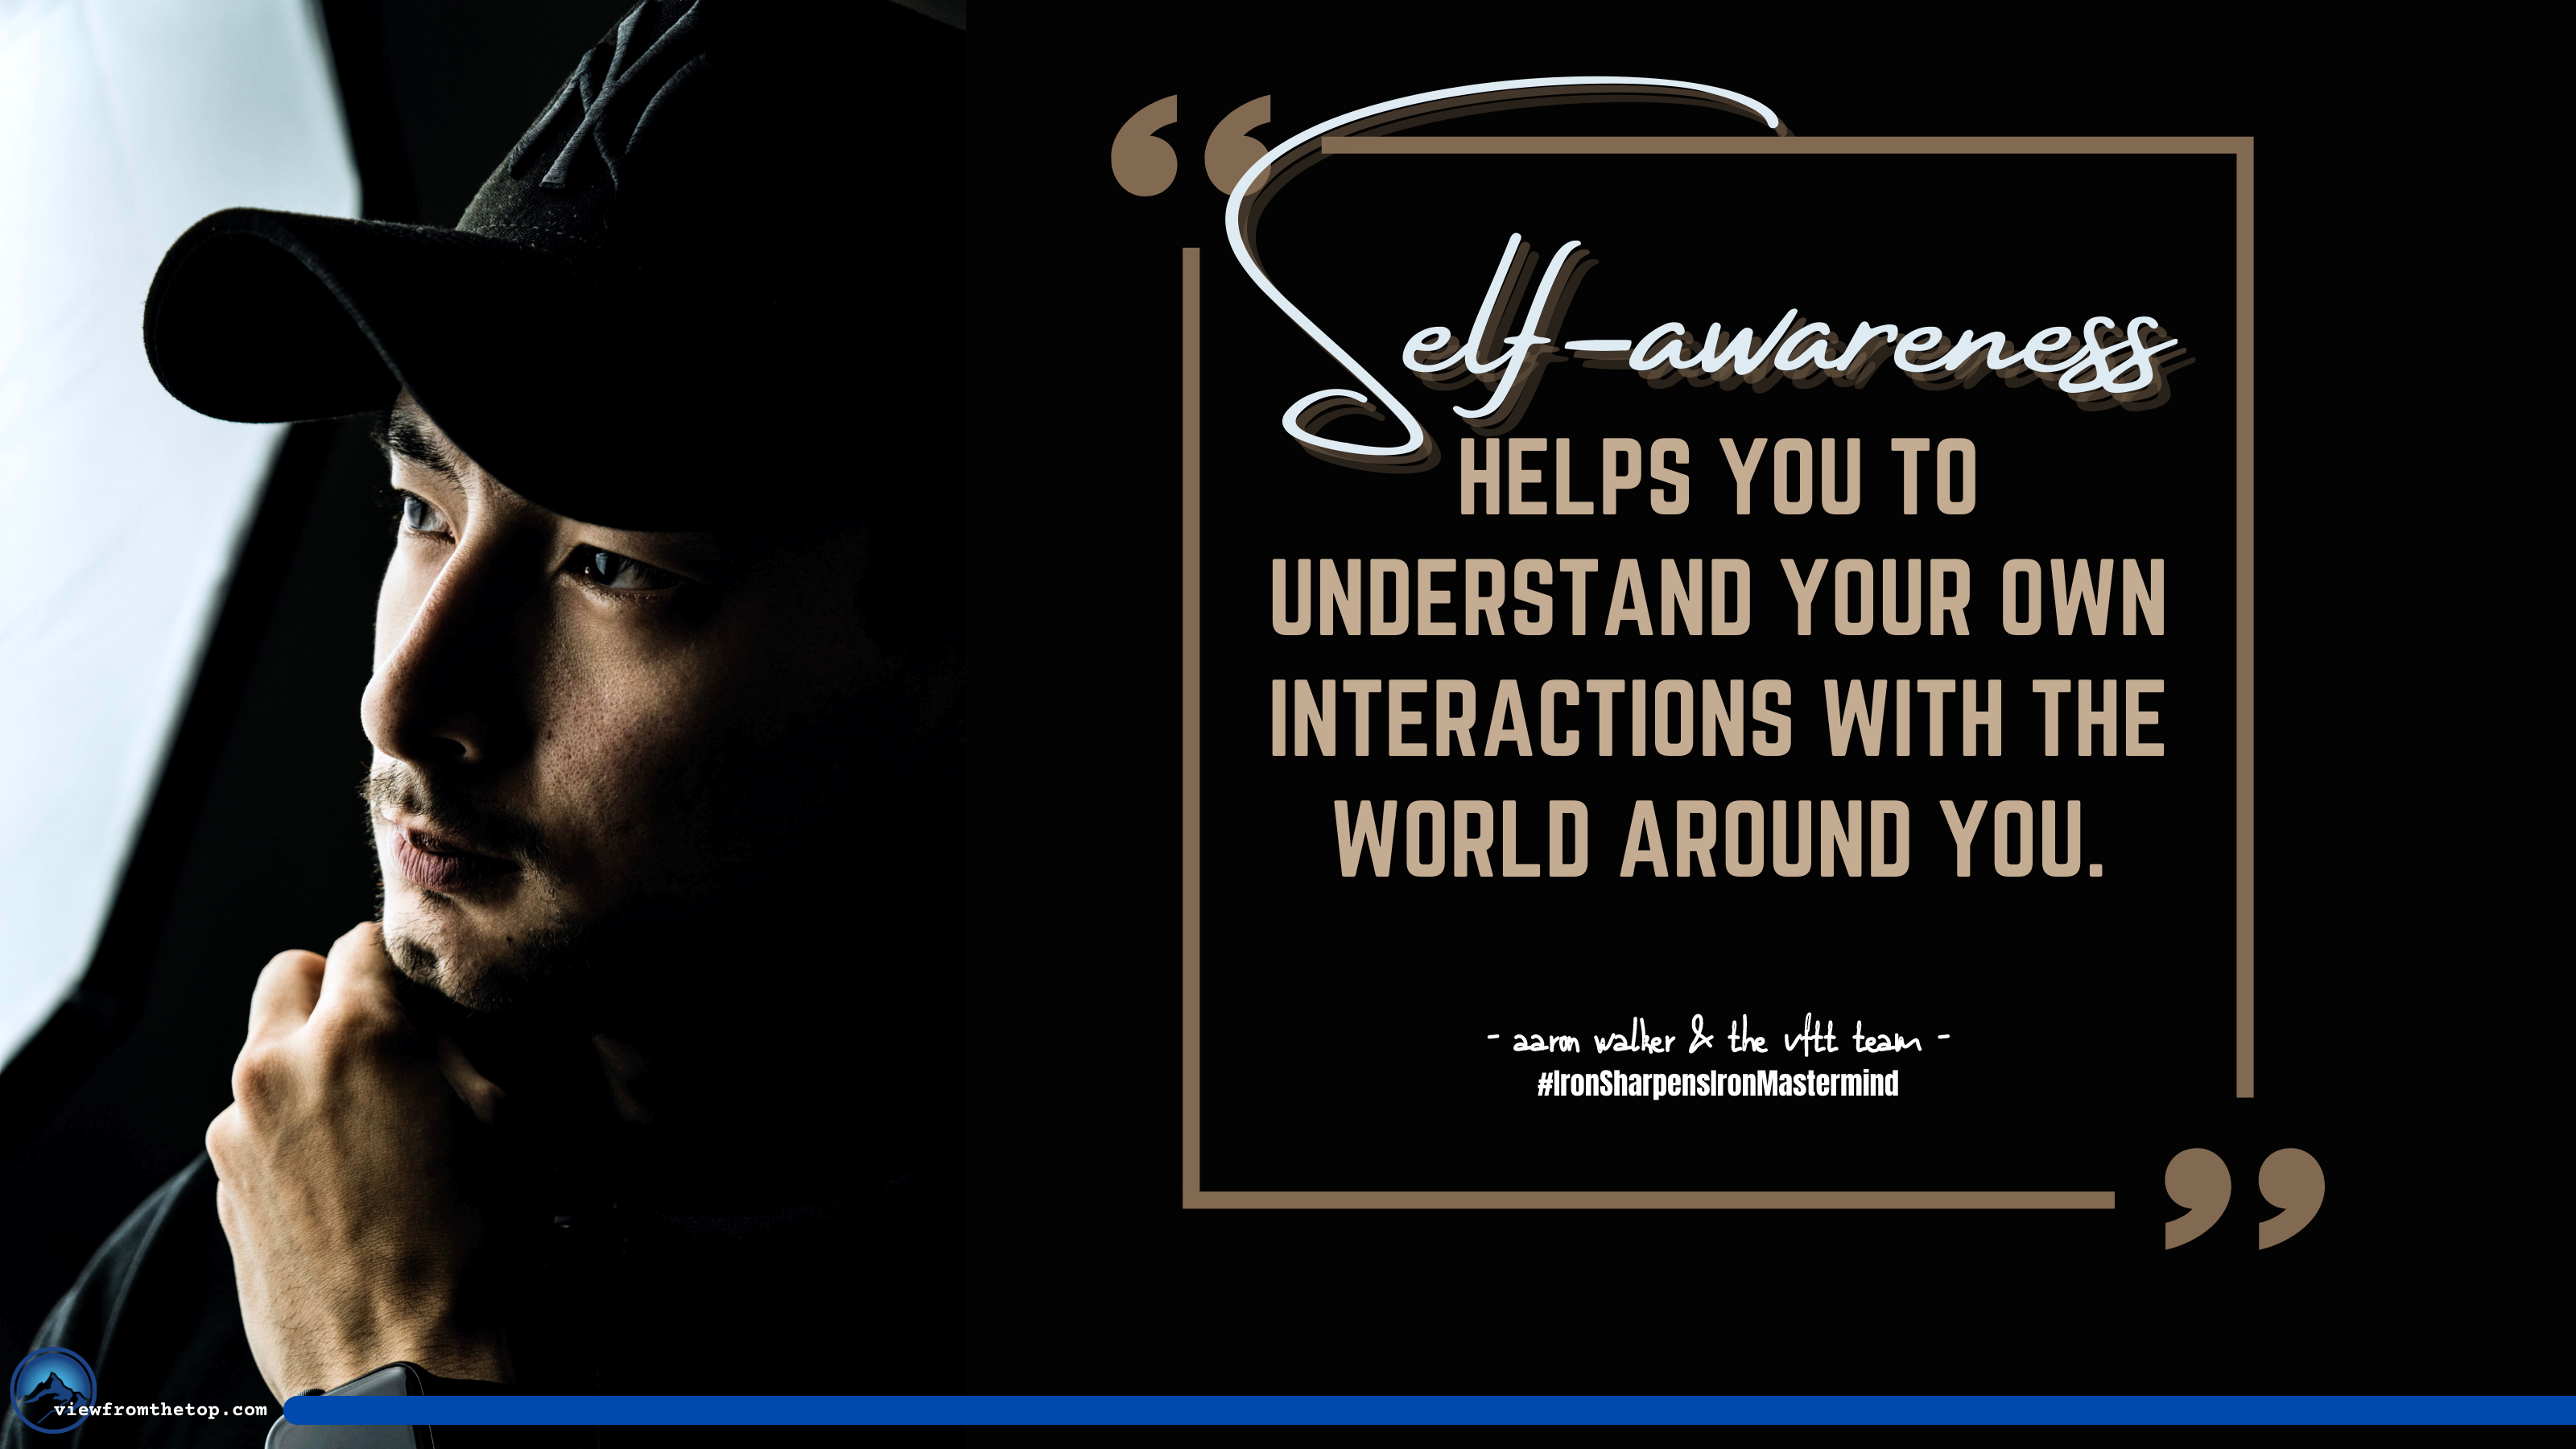 Self-awareness helps you to understand your own interactions with the world around you. (1)